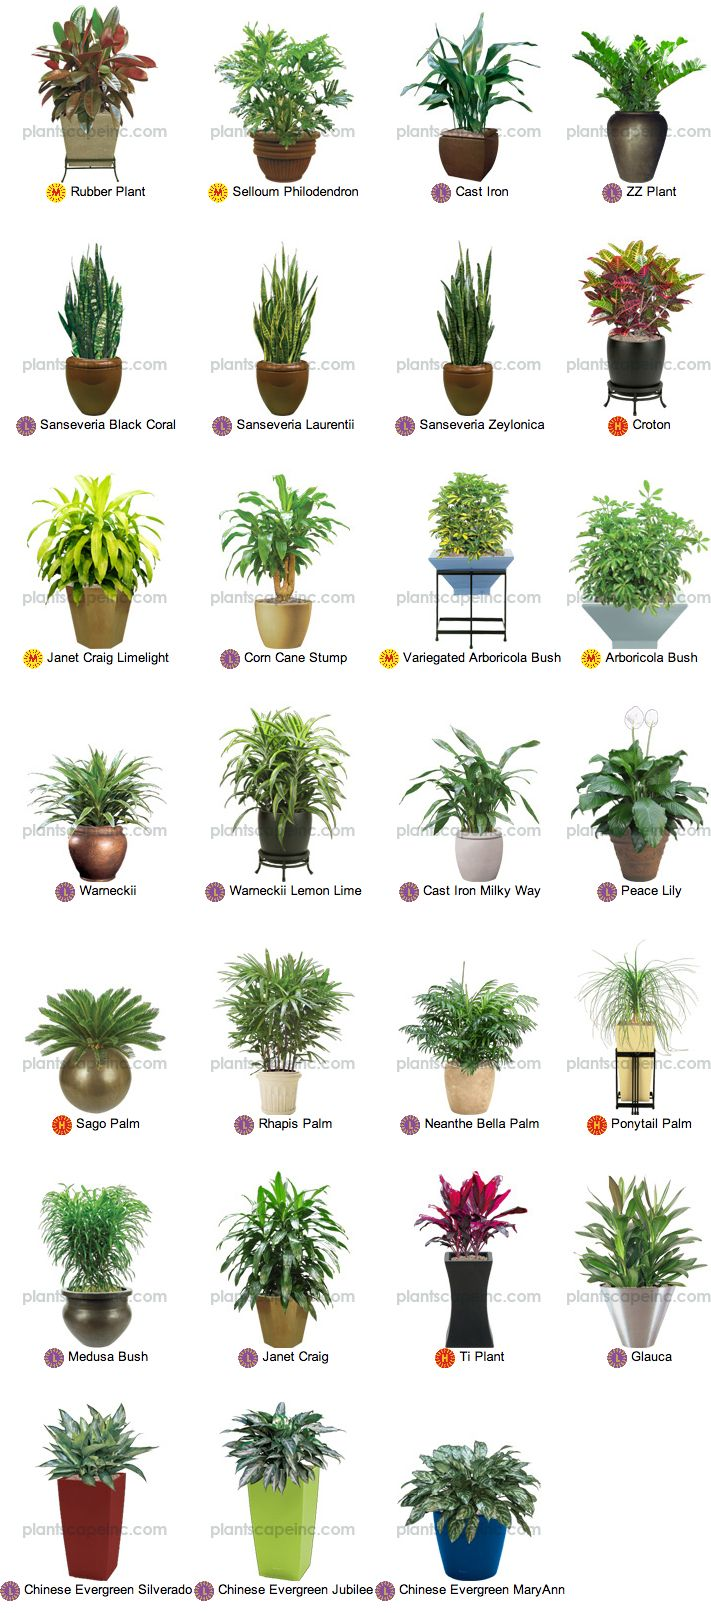 Small Tropical Plants for Interior Landscaping by Plantscape Inc.